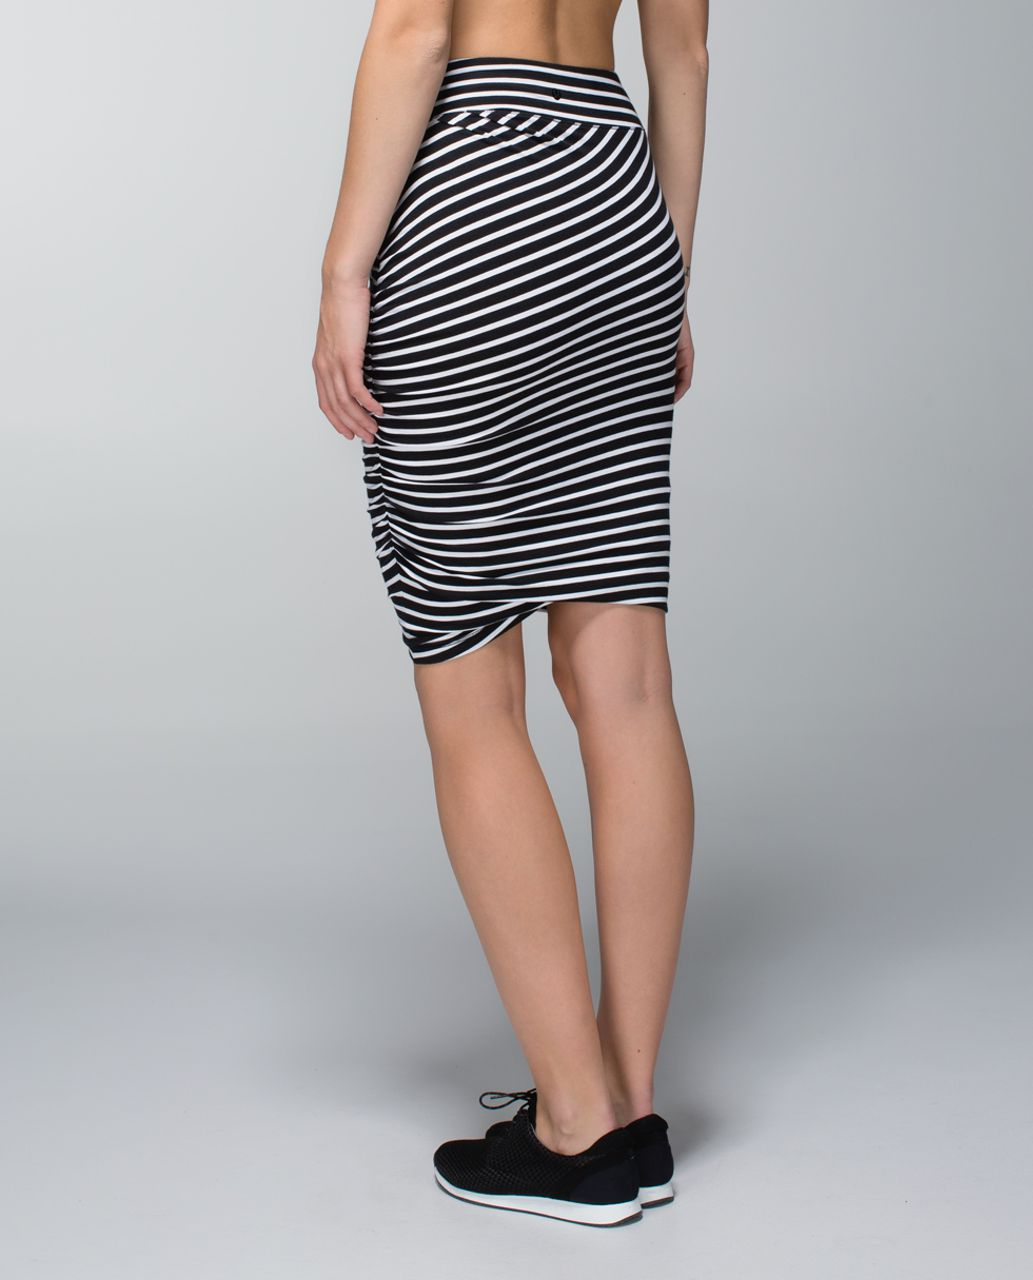 Lululemon Anytime Skirt - Deenie Stripe White Black